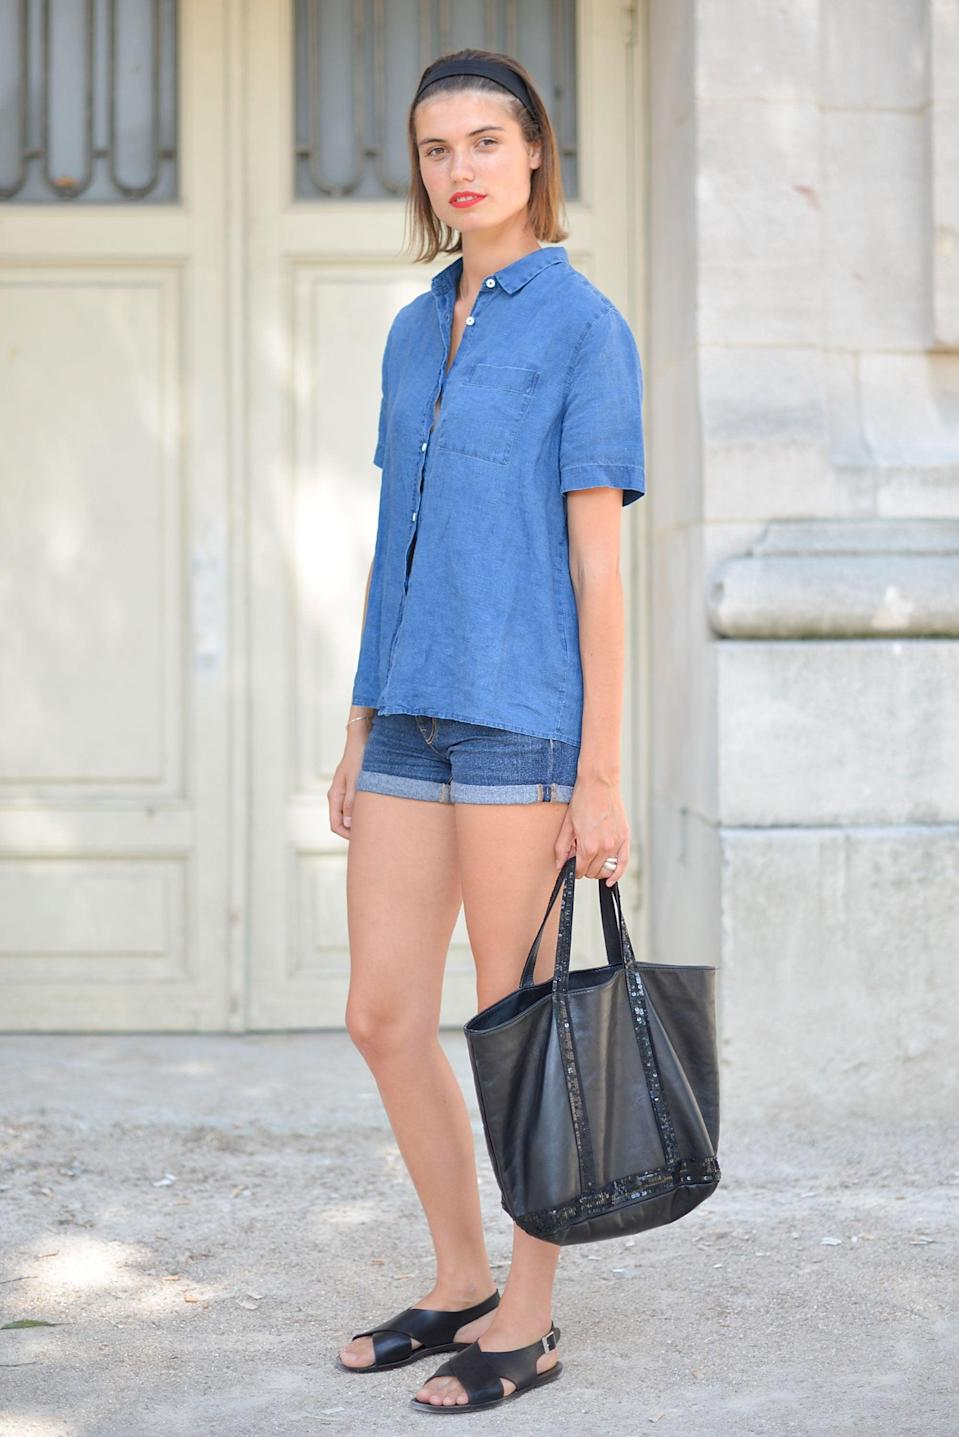 <p>Even casual sandals and jean shorts can feel elevated with the right accessories.</p>